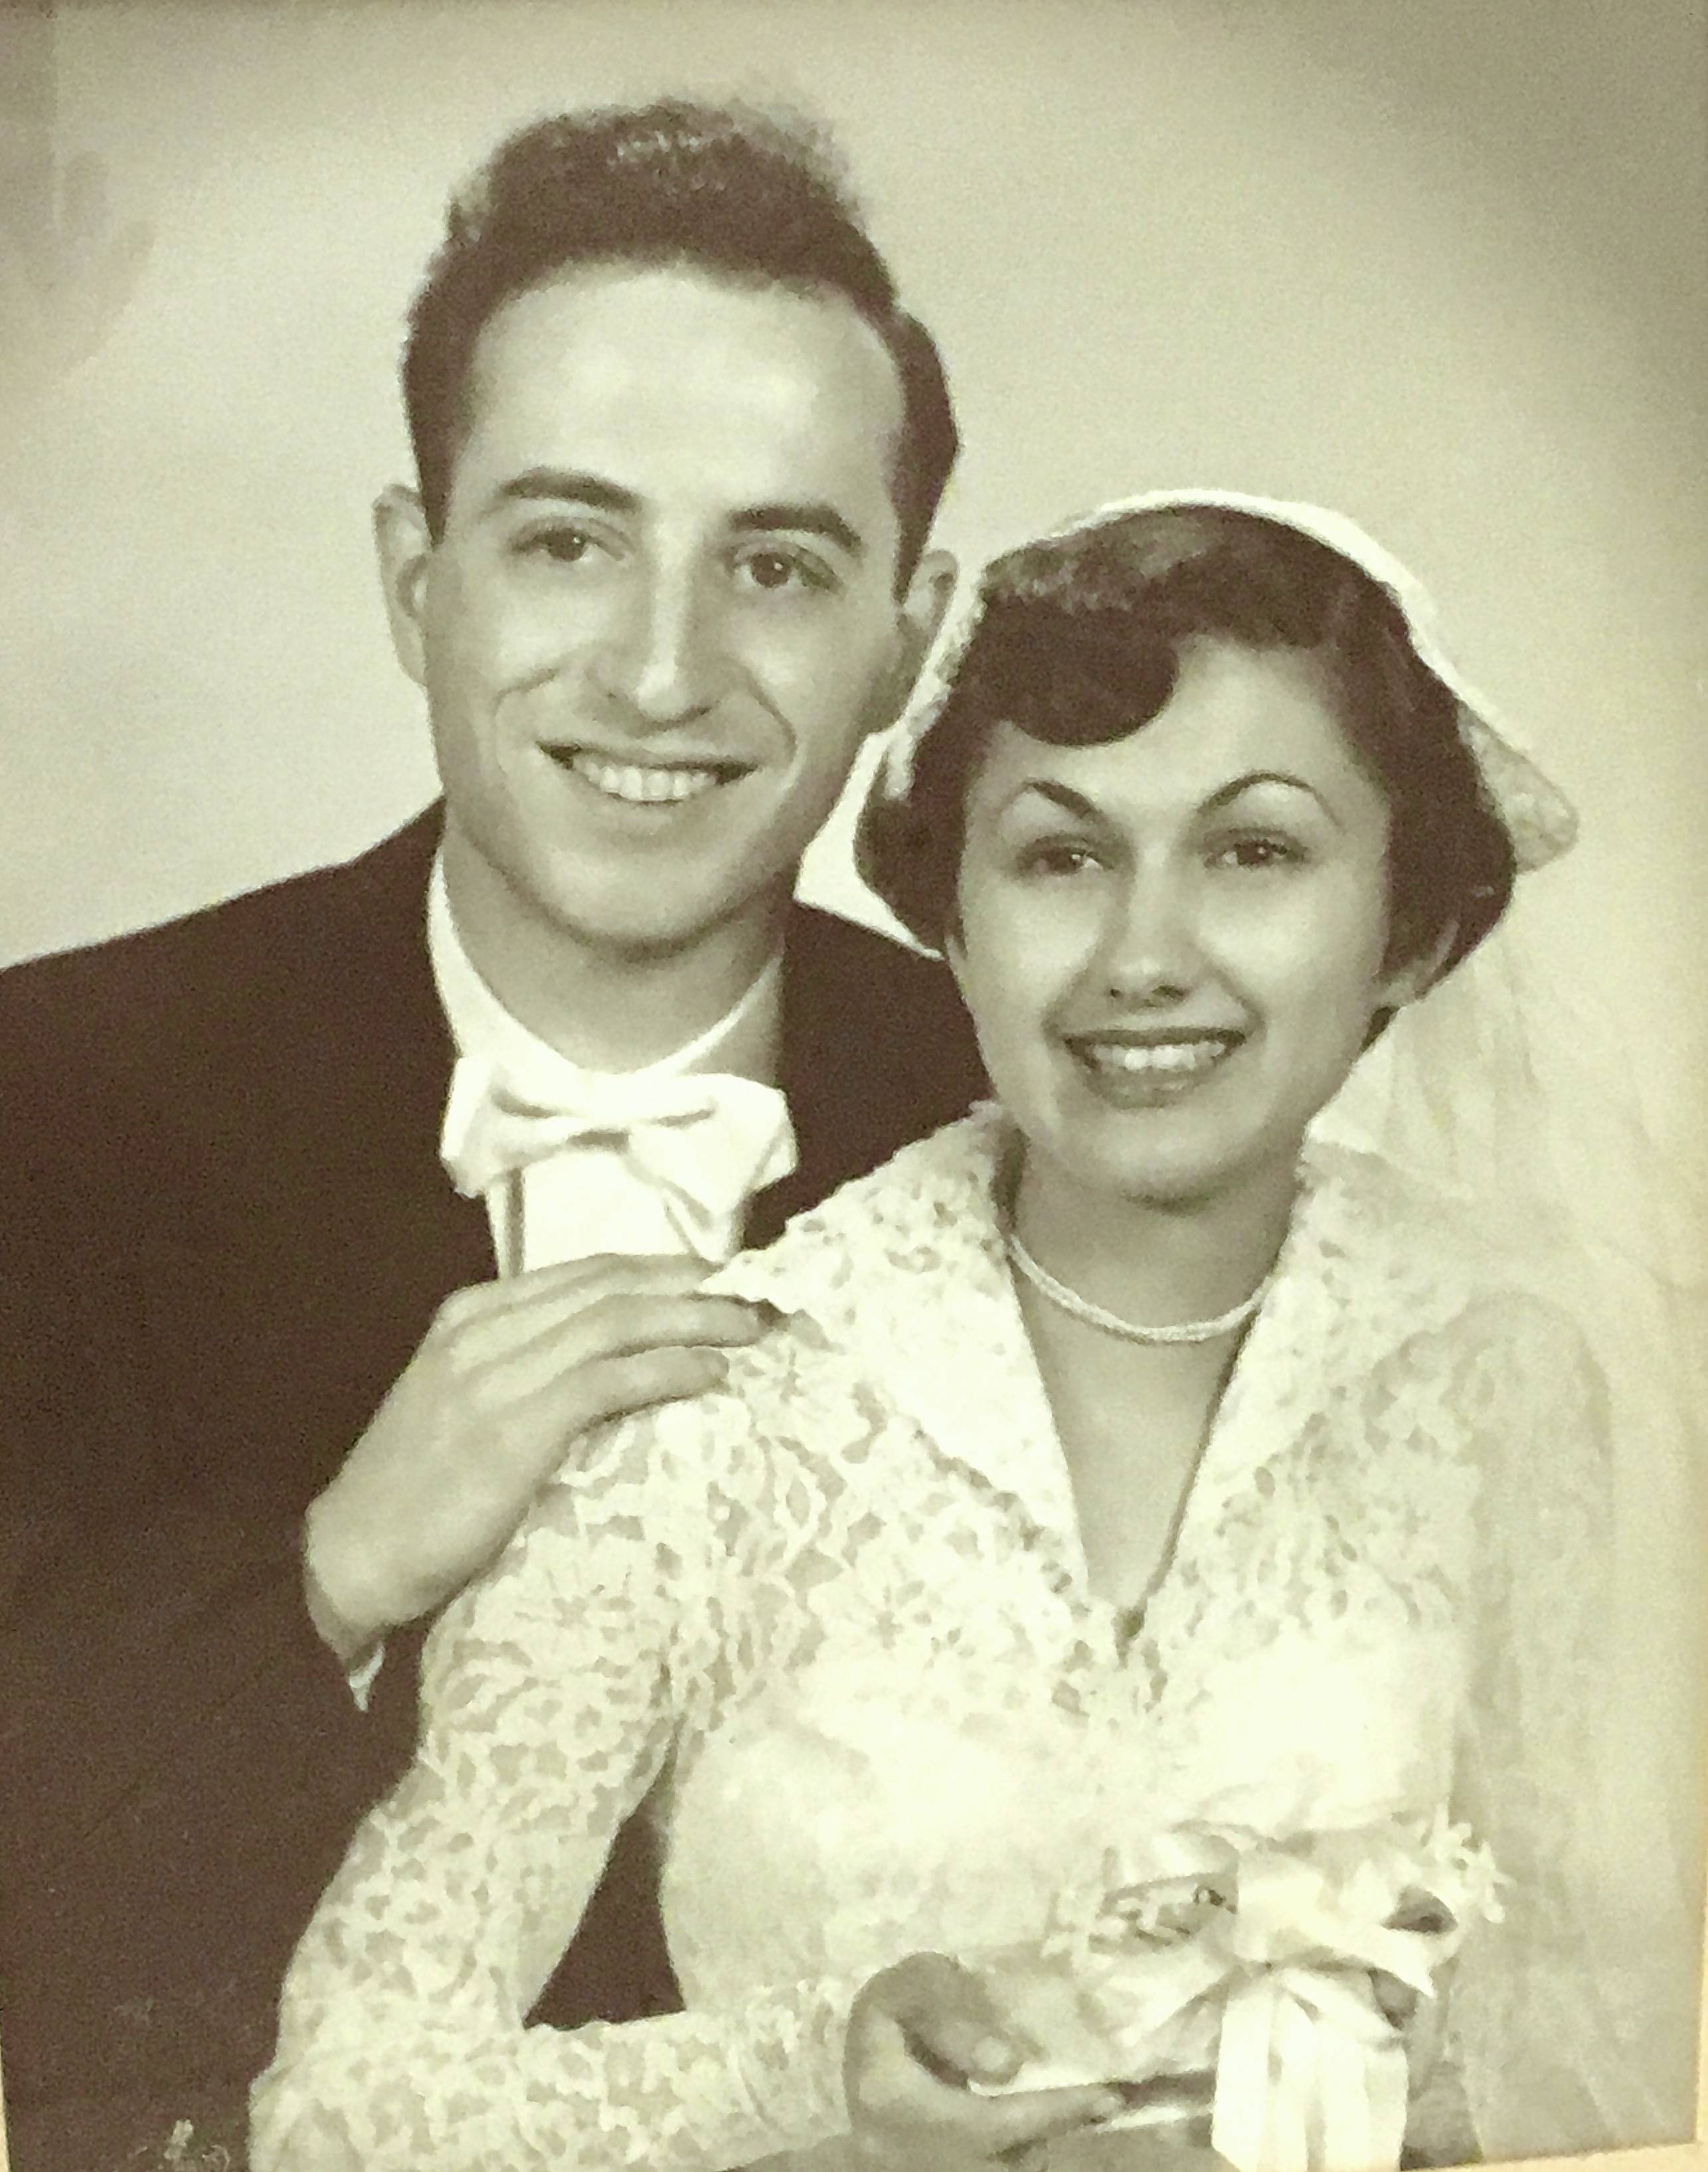 Marvin Rozner died late Friday night in Florida at 88. He is seen here with wife Gloria on their wedding day in the early 1950s.